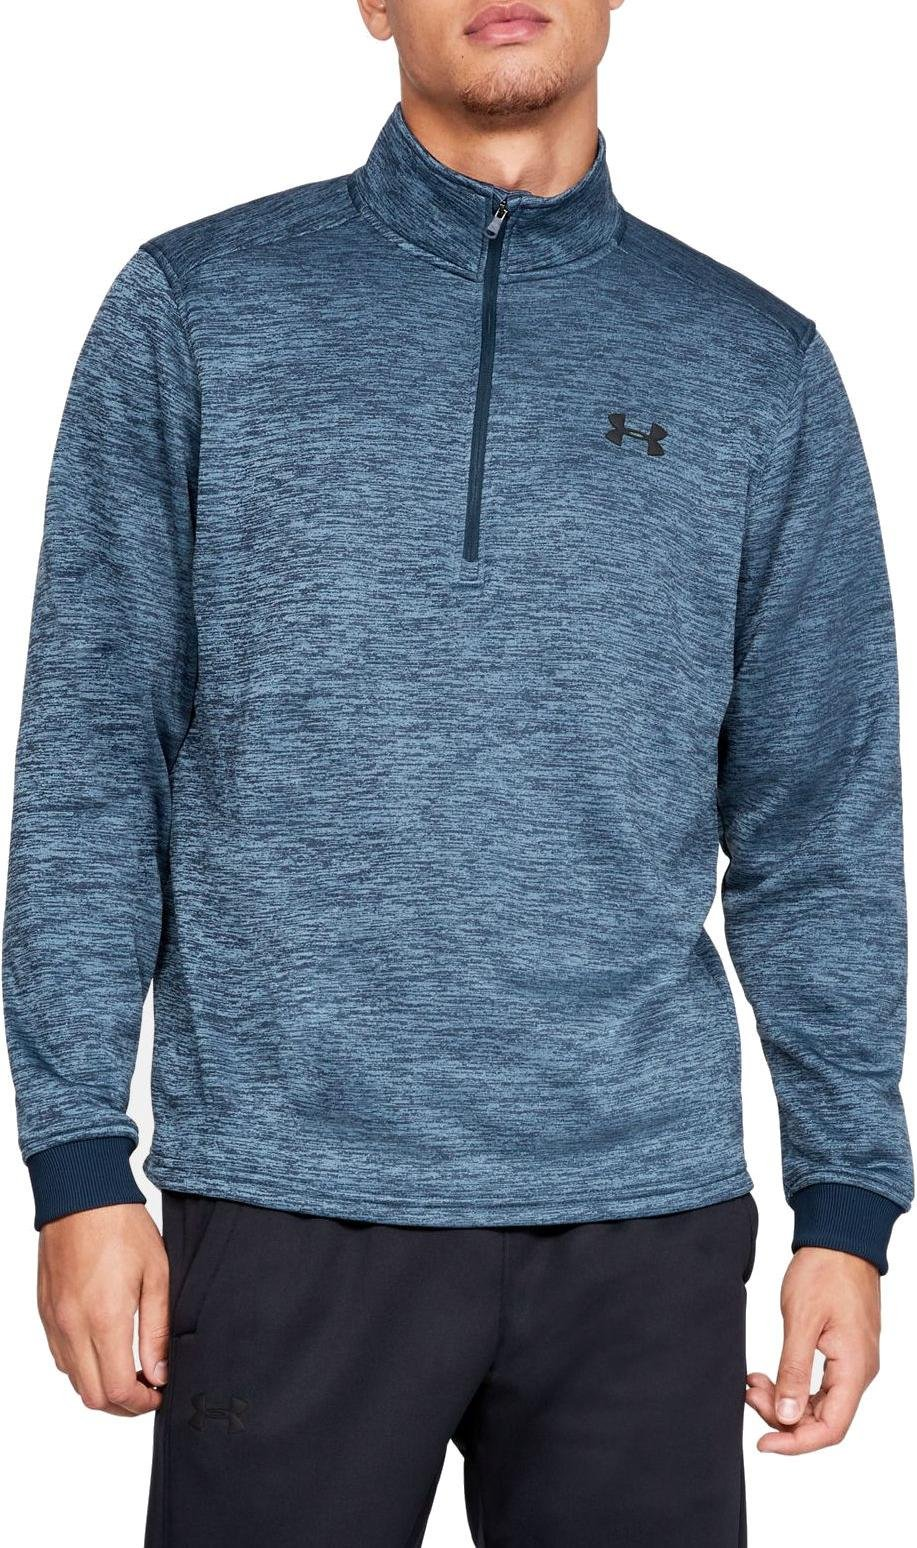 Langarm-T-Shirt Under Armour ARMOUR FLEECE 1/2 ZIP